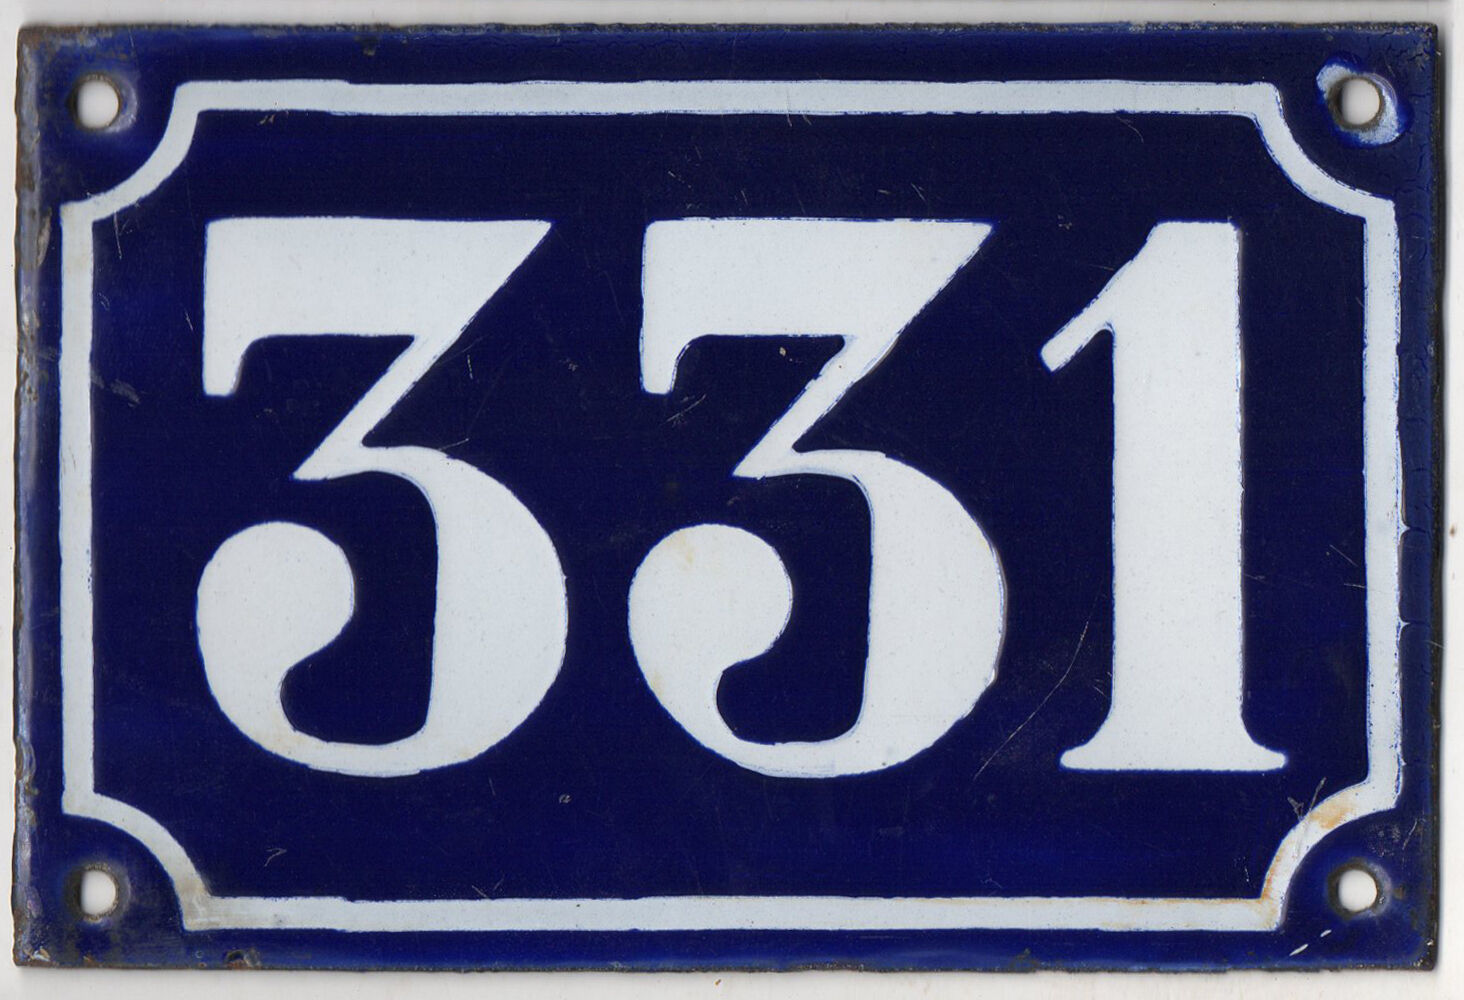 Old blue French house number 331 door gate plate plaque enamel metal sign c1900